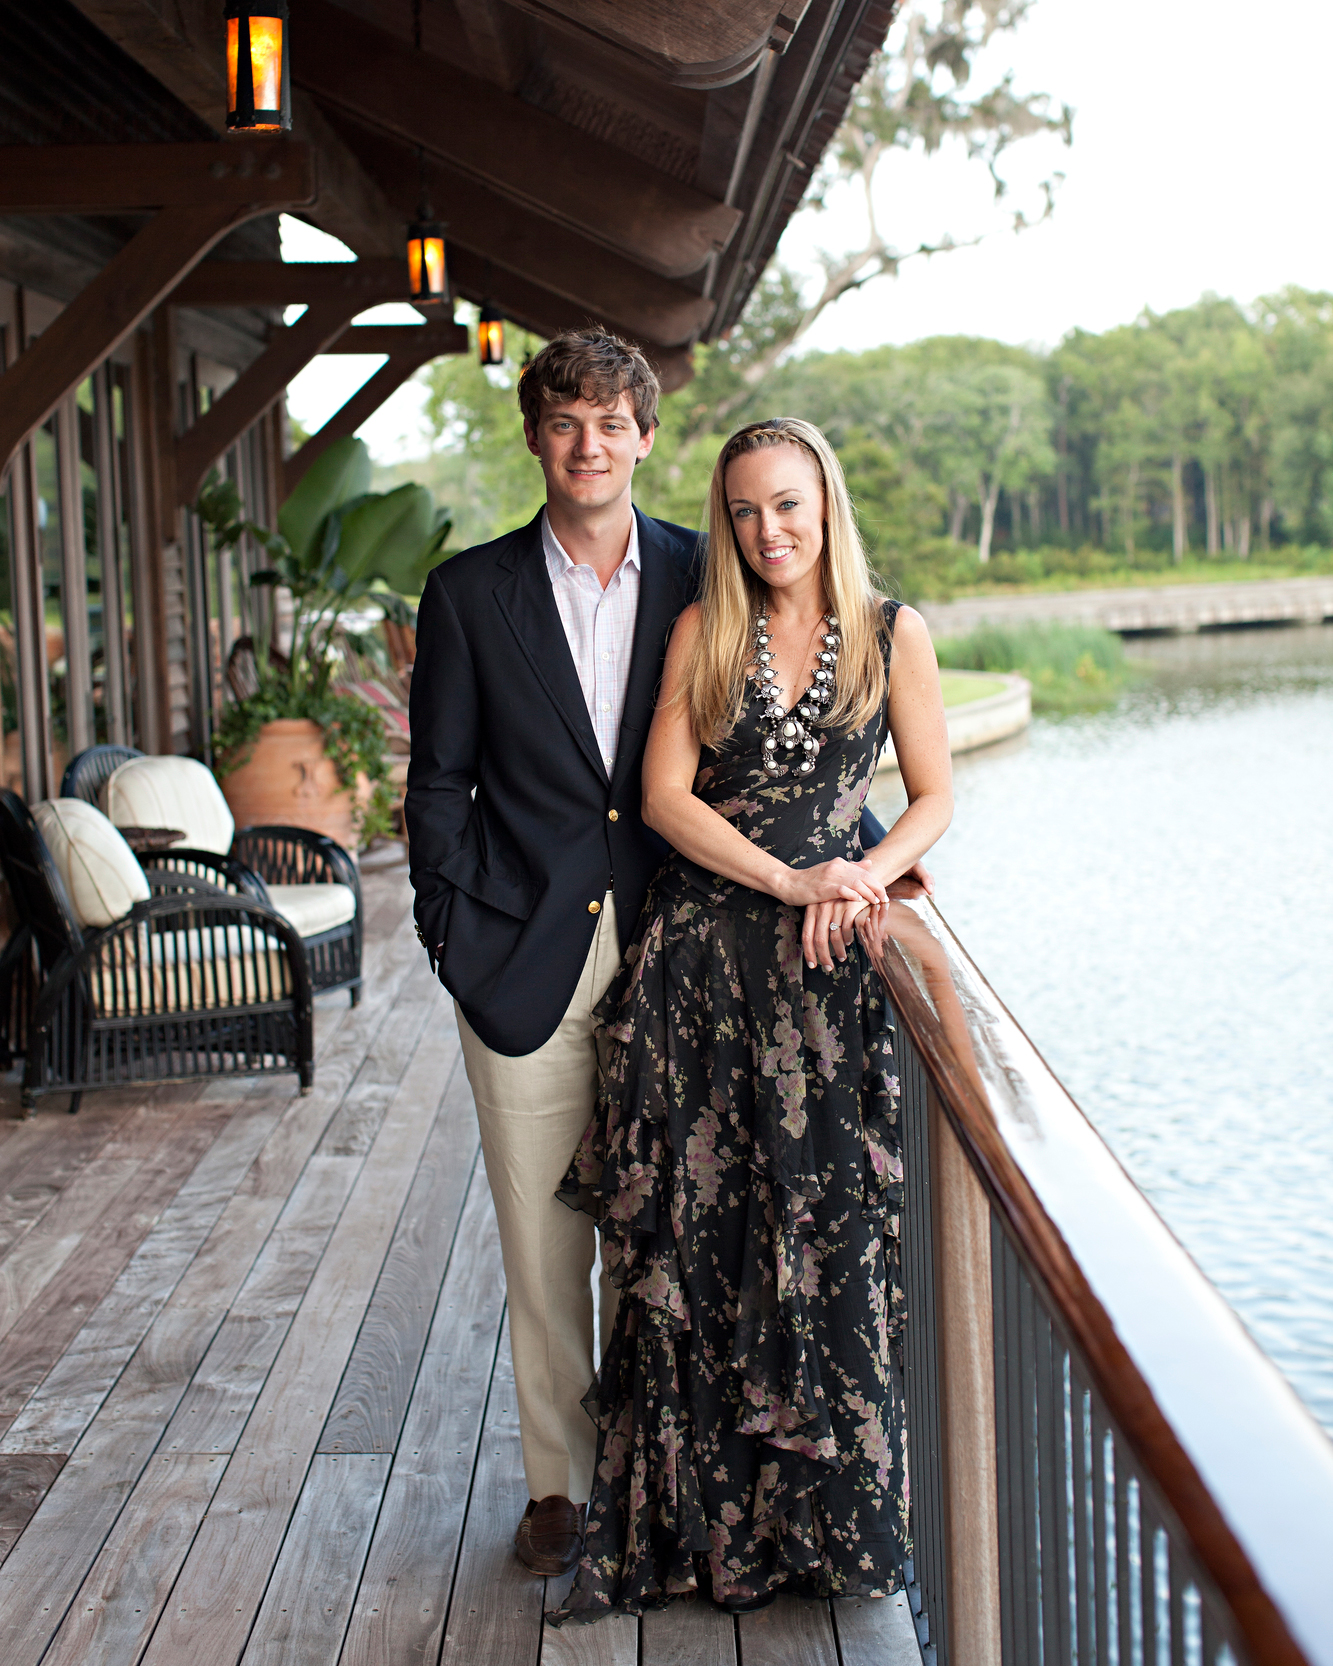 Hometown Wedding Rehearsal Slideshow: Laird And Ross's Festive Rehearsal Dinner With A Southern